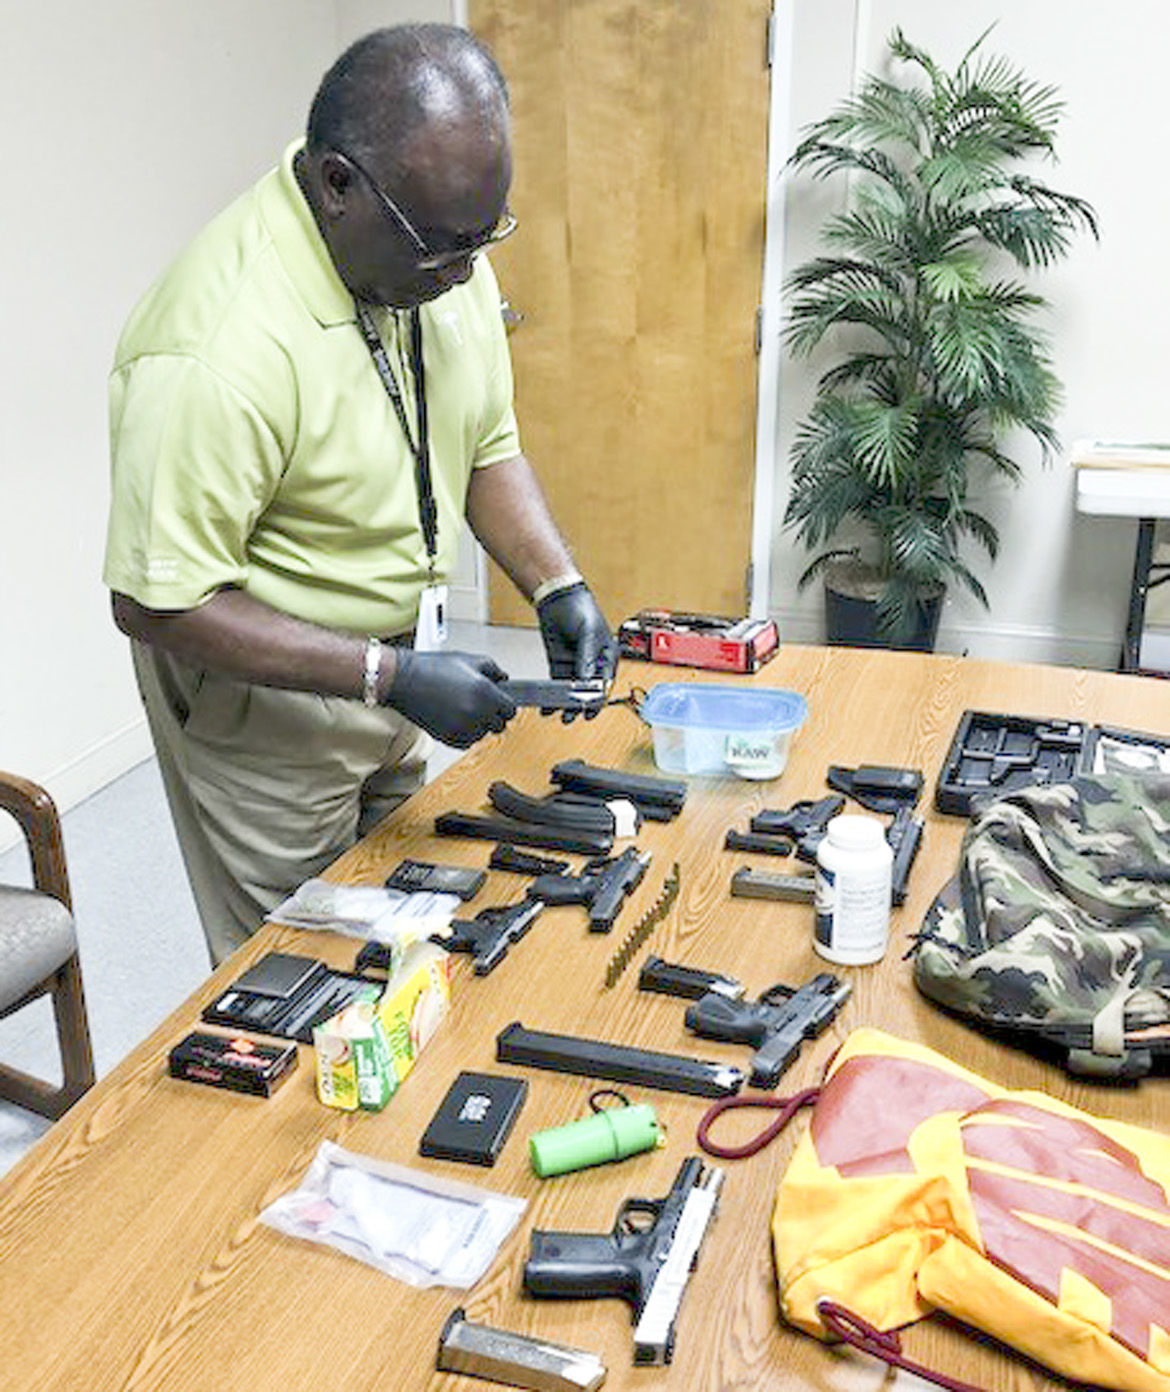 Drugs and weapons seized